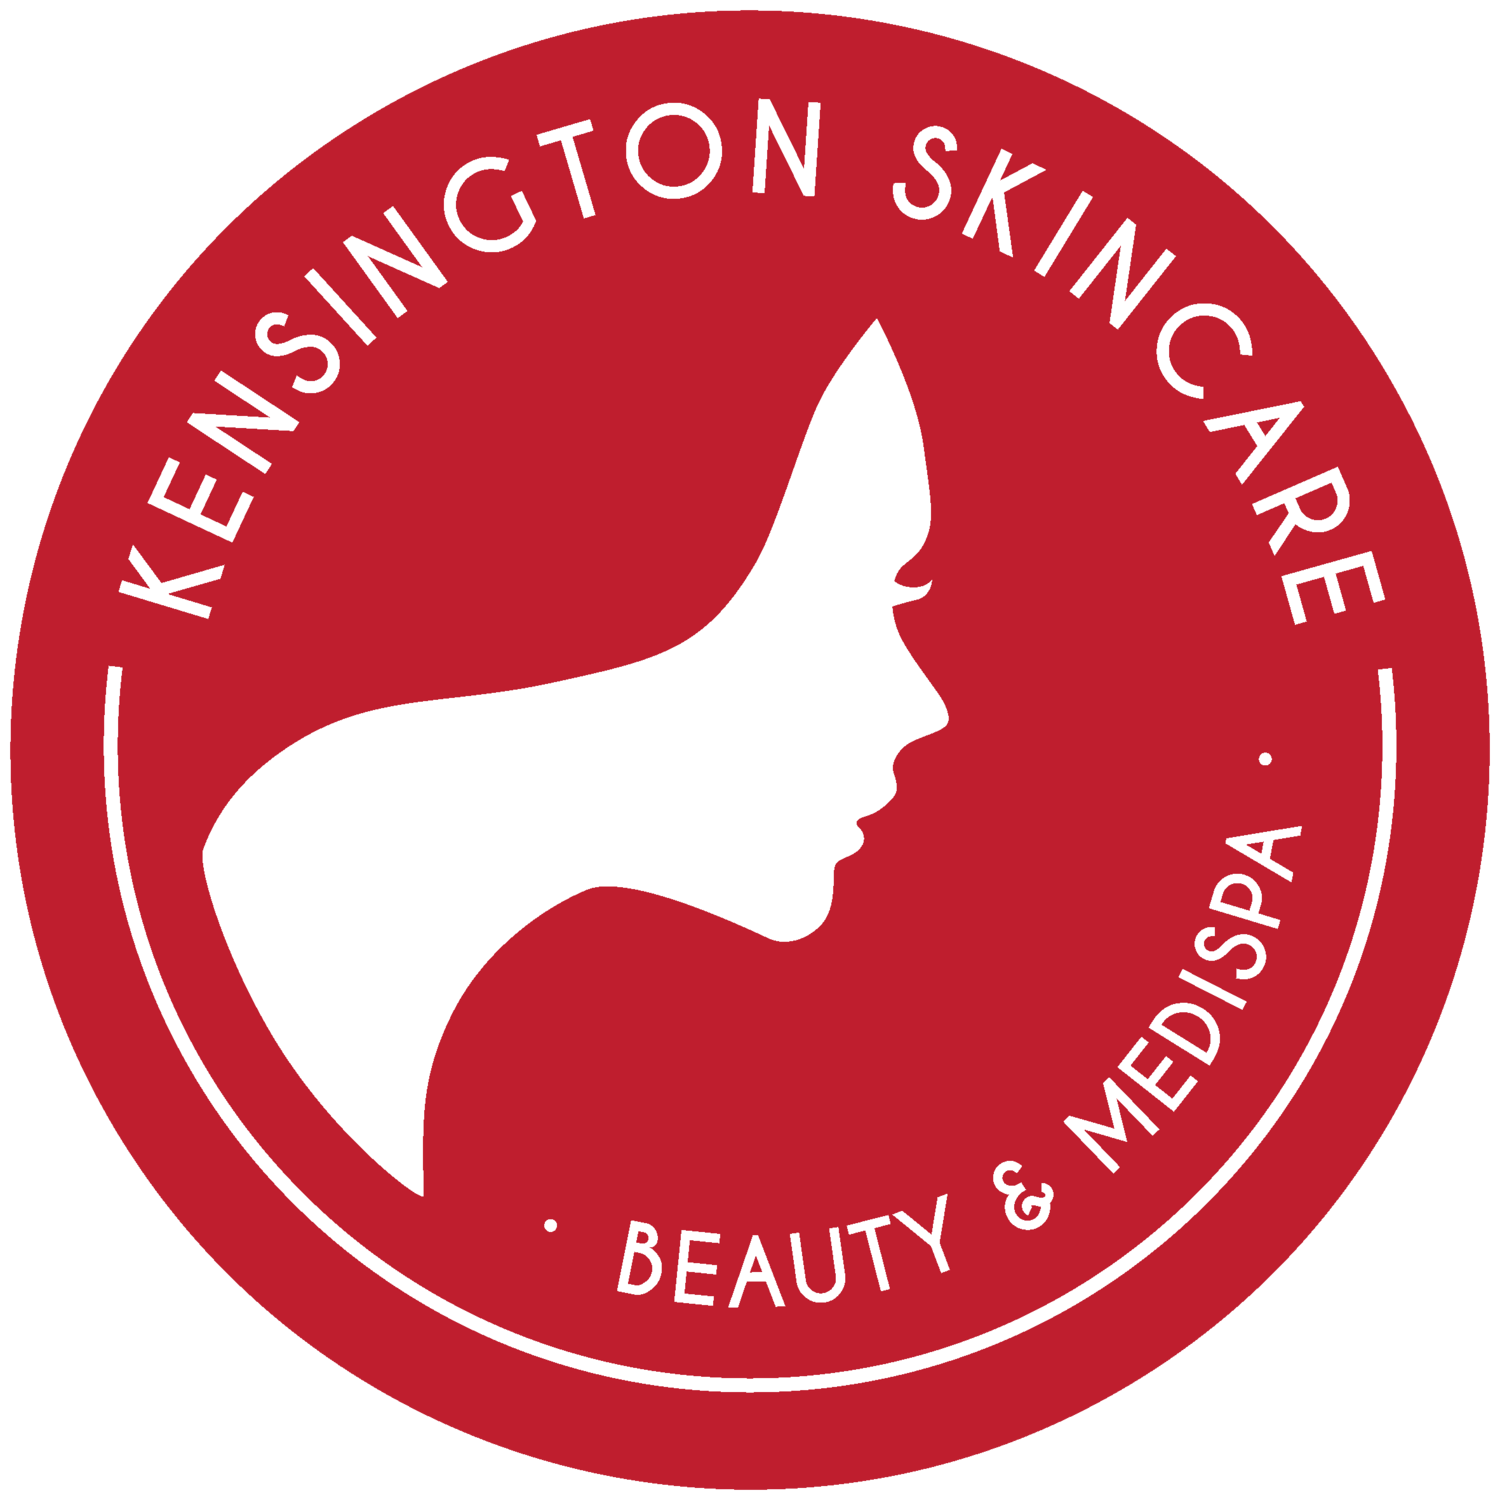 Kensington SkinCare Beauty and MediSpa Clinic